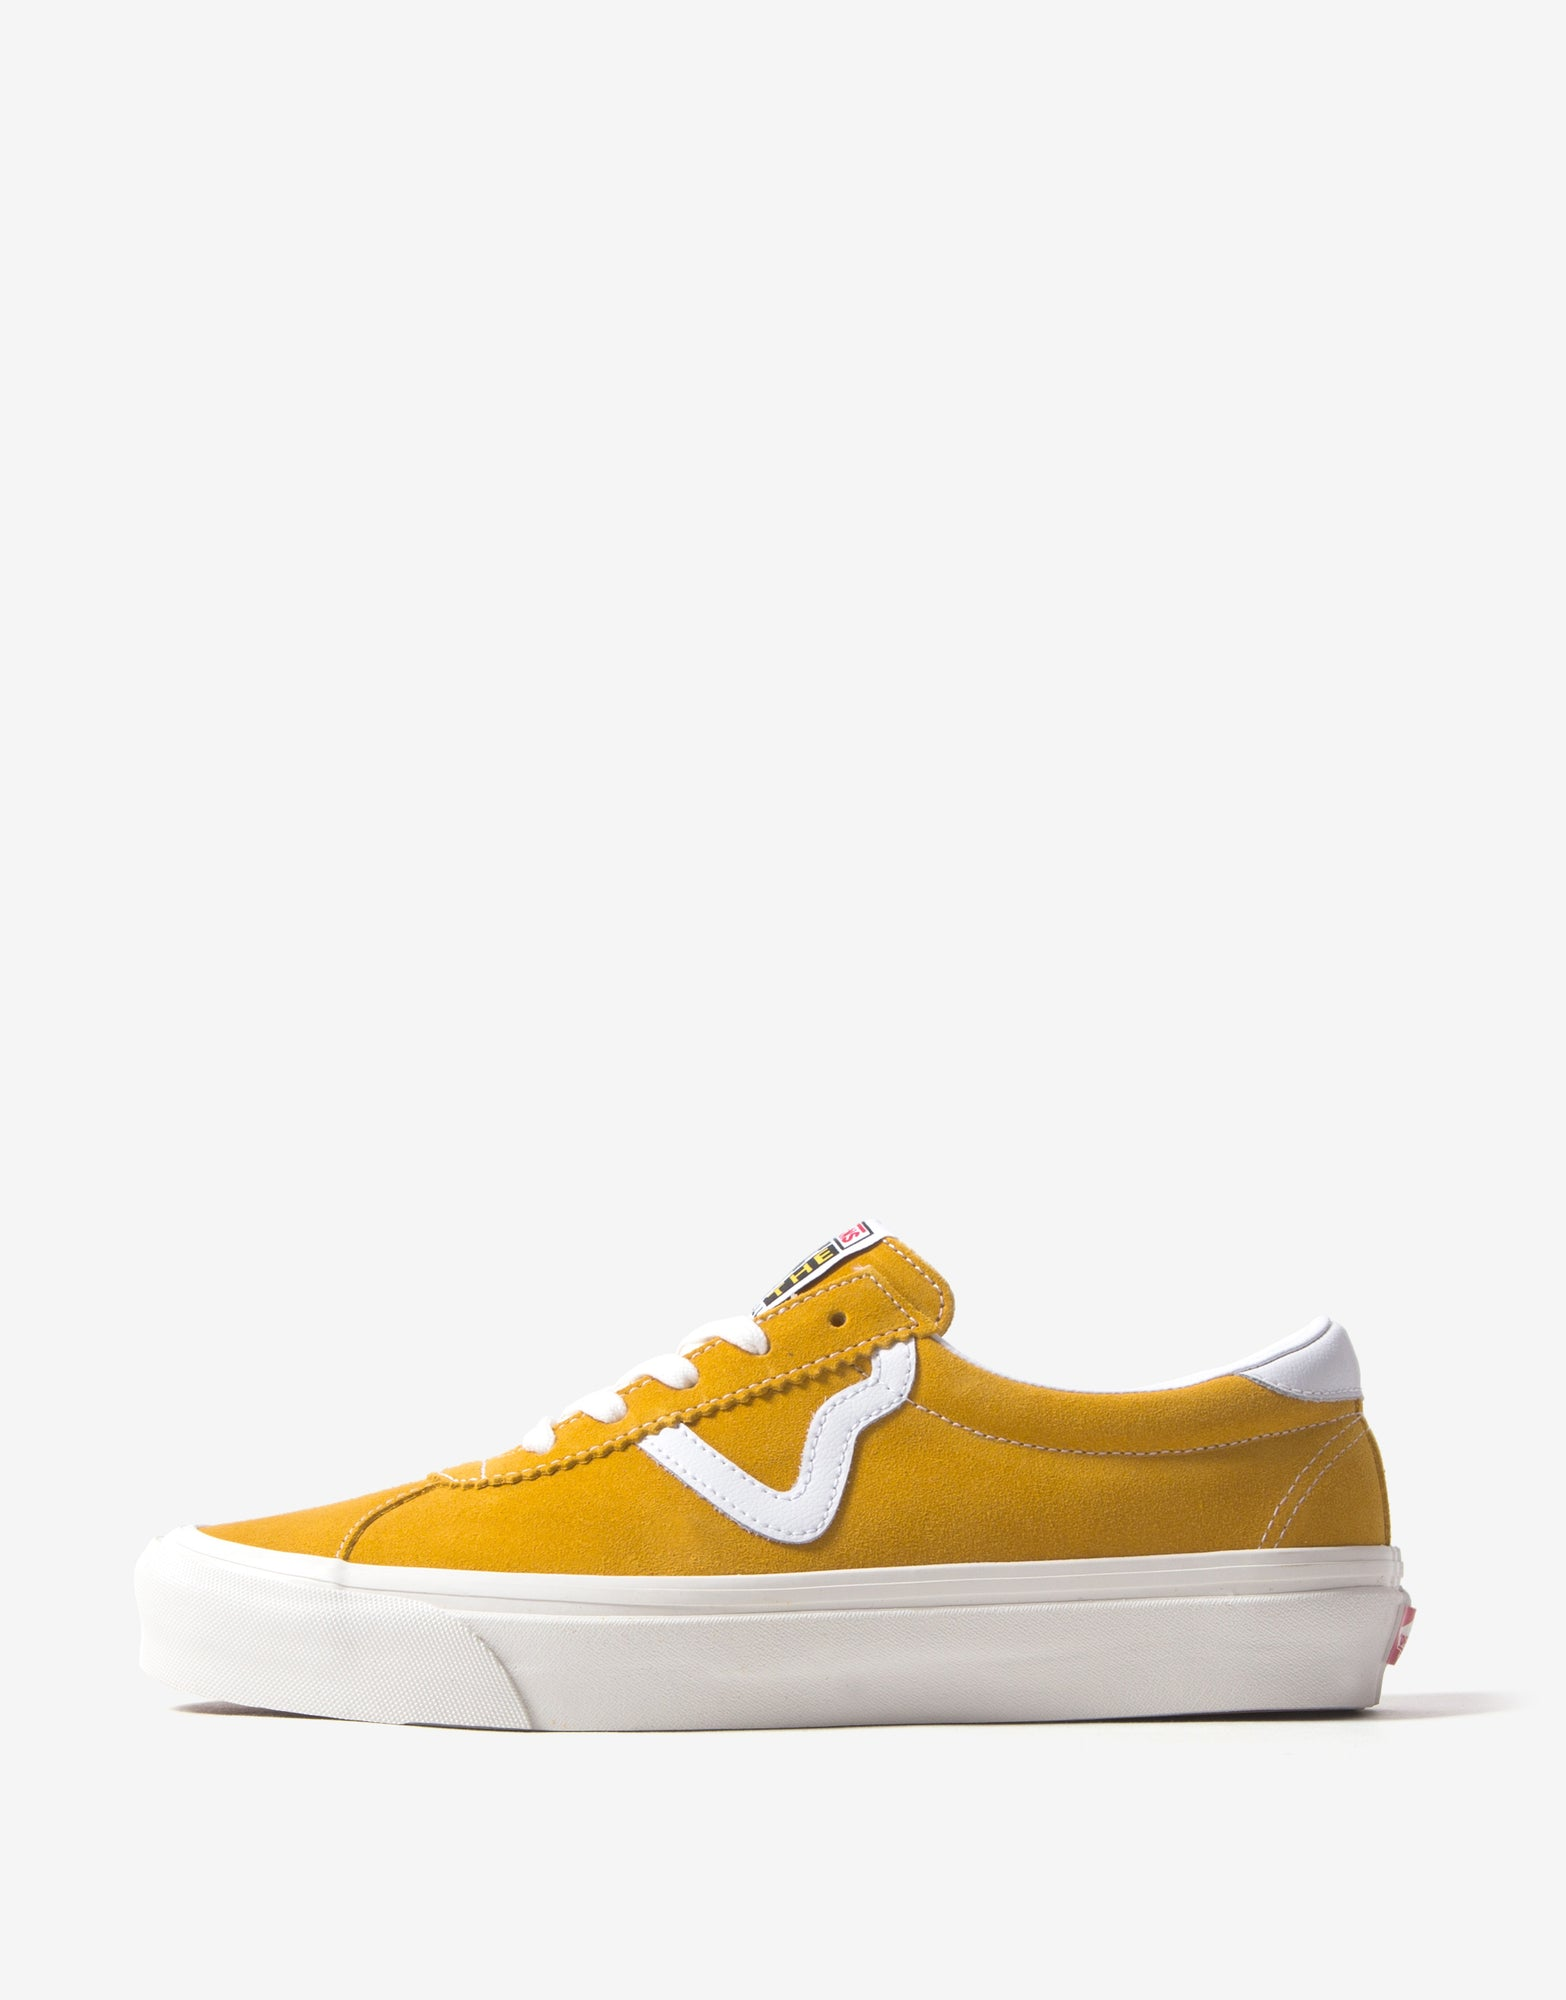 Vans Style 73 DX 'Anaheim Factory' Shoes - OG Saffron